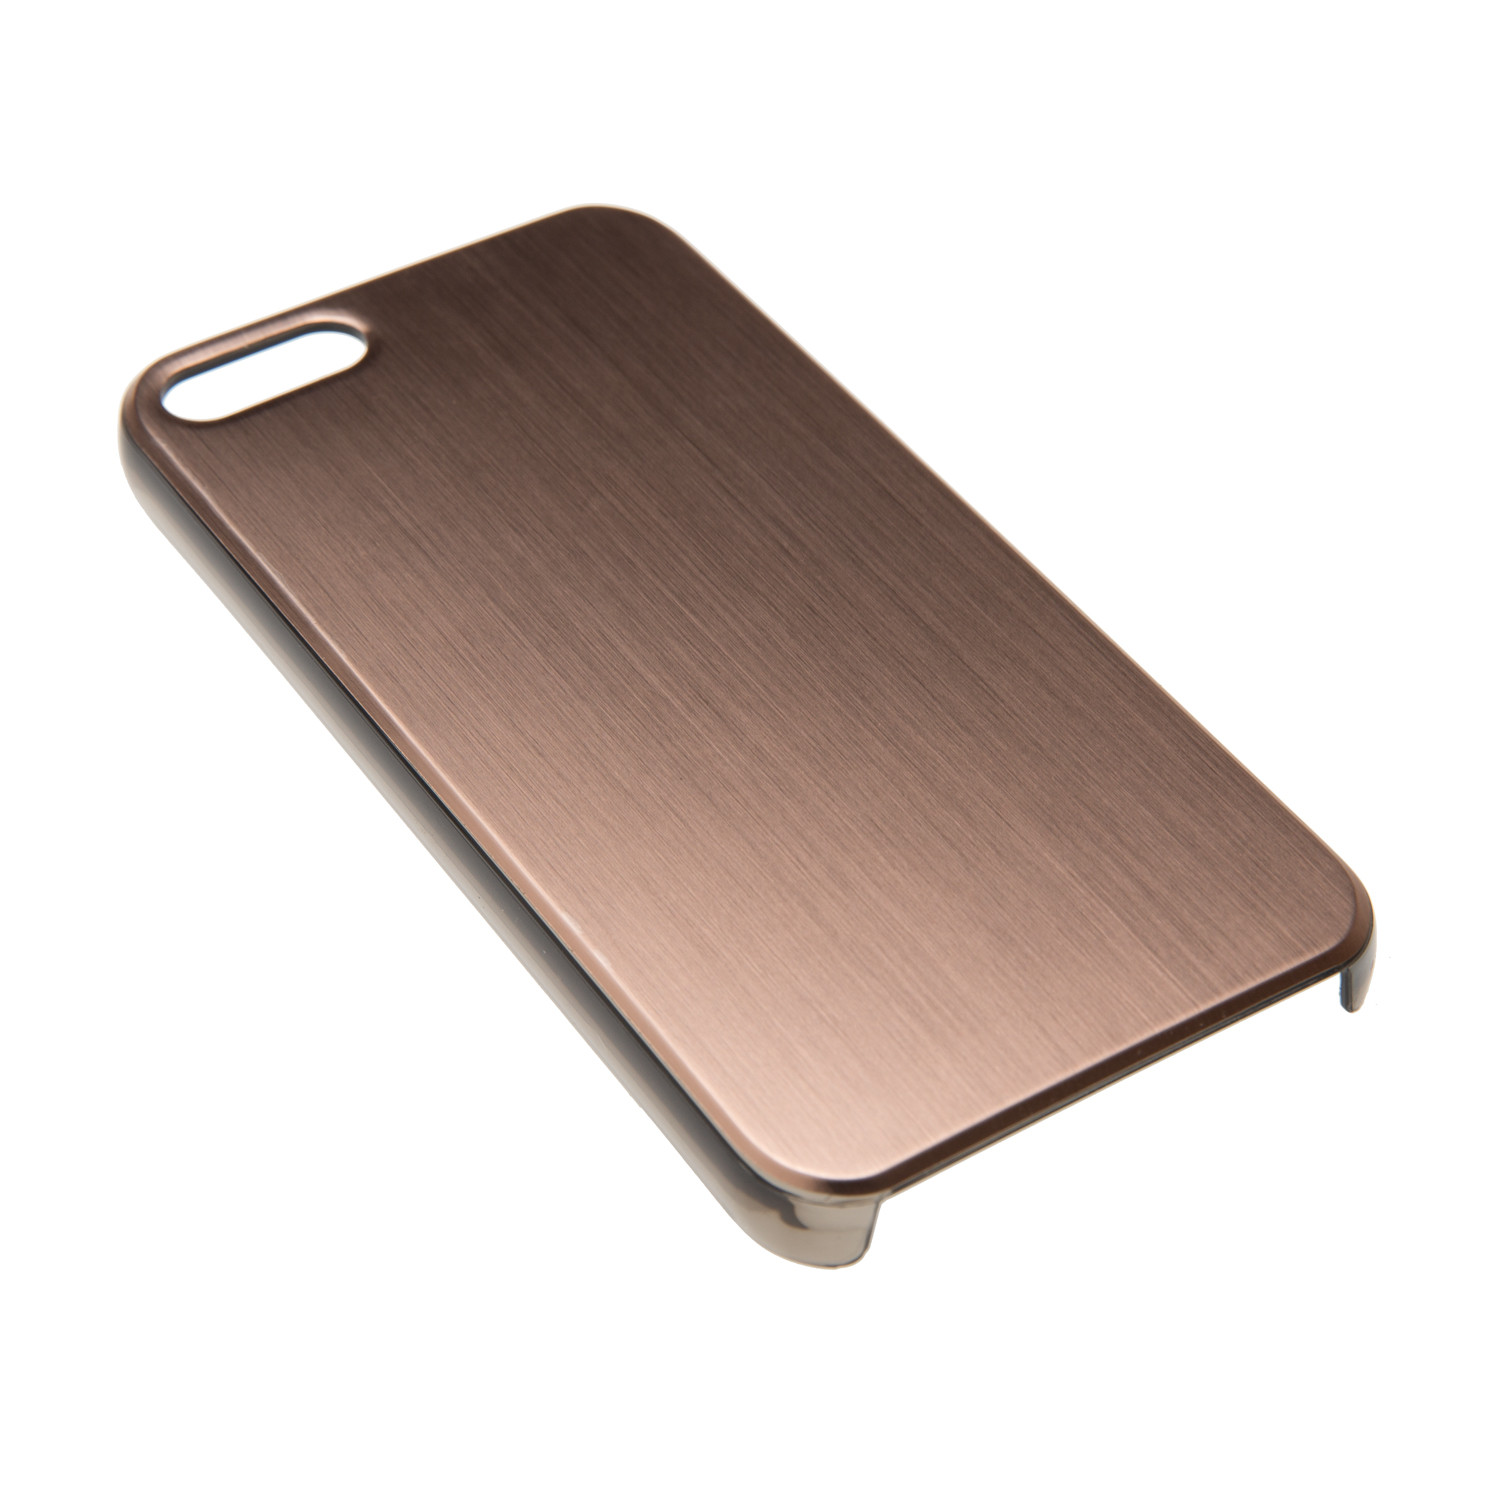 brushed metallic rose gold iphone 5 5s felony case. Black Bedroom Furniture Sets. Home Design Ideas